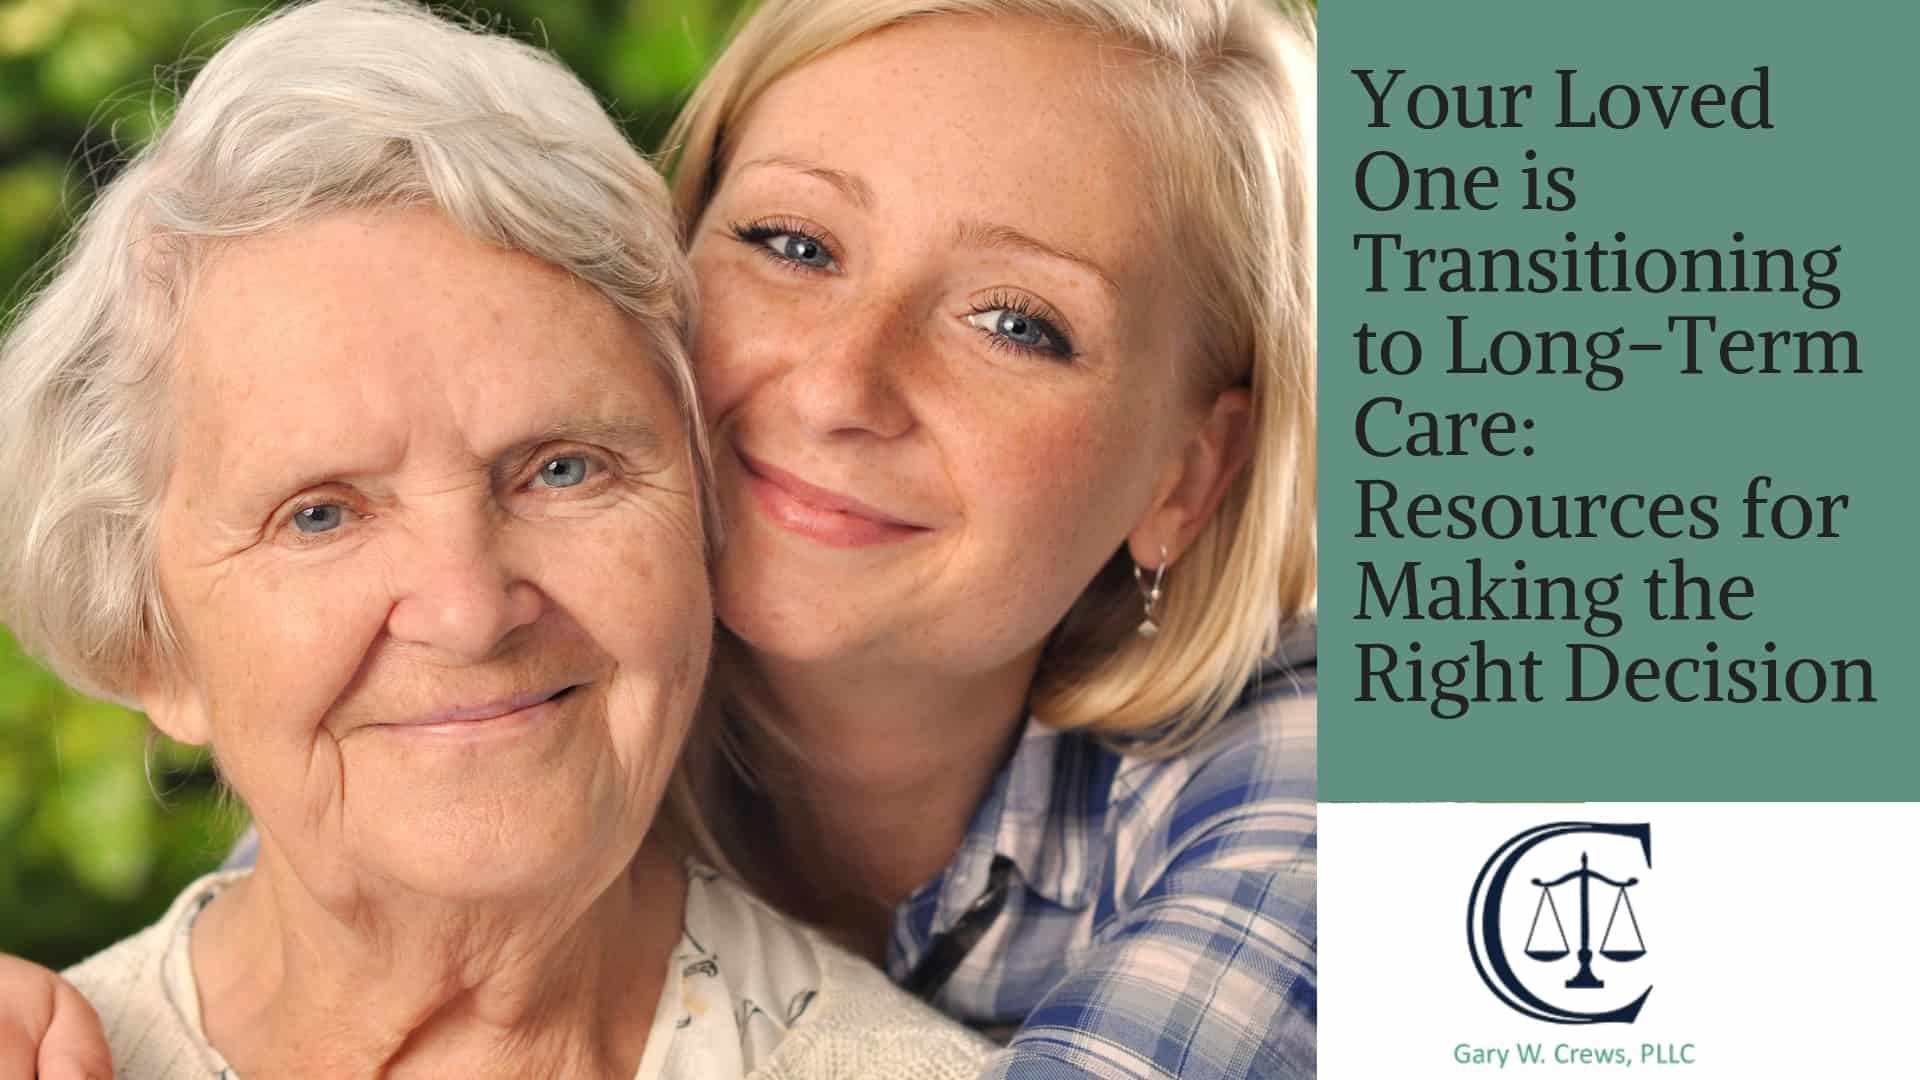 Tulsa Transition Lawyer your loved one is transitioning to long-term care: resources for making the right decision - ltc transition - Your Loved One is Transitioning to Long-Term Care: Resources for Making the Right Decision